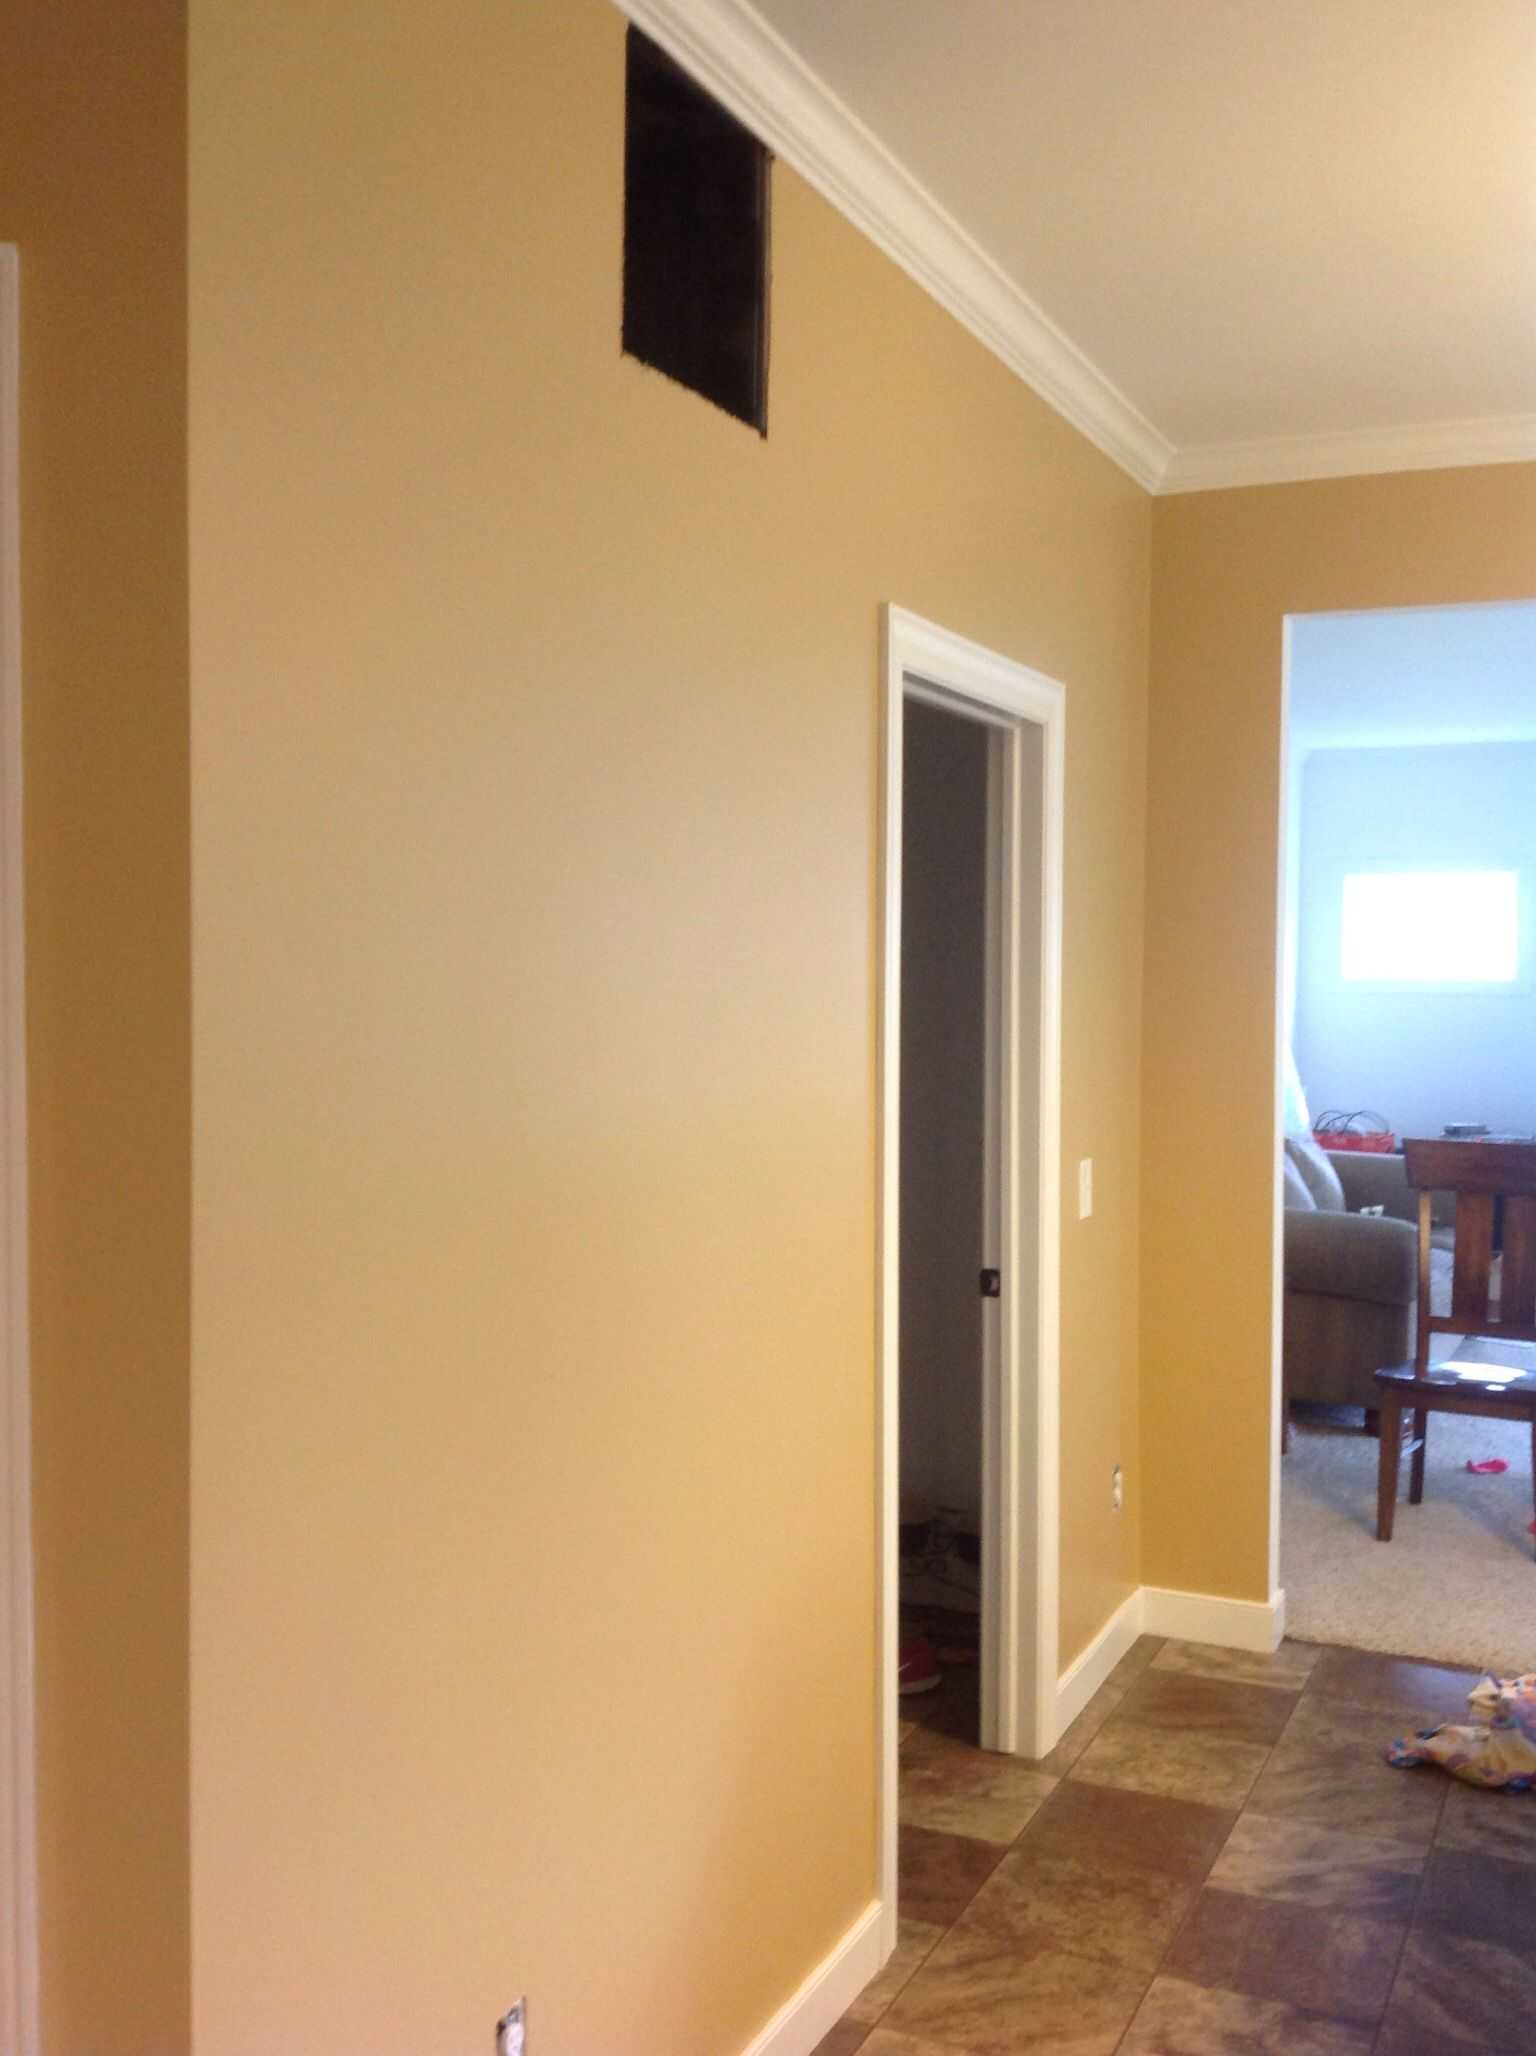 11/22/2014: Sherwin Williams stonebriar - good image of how it looks ...